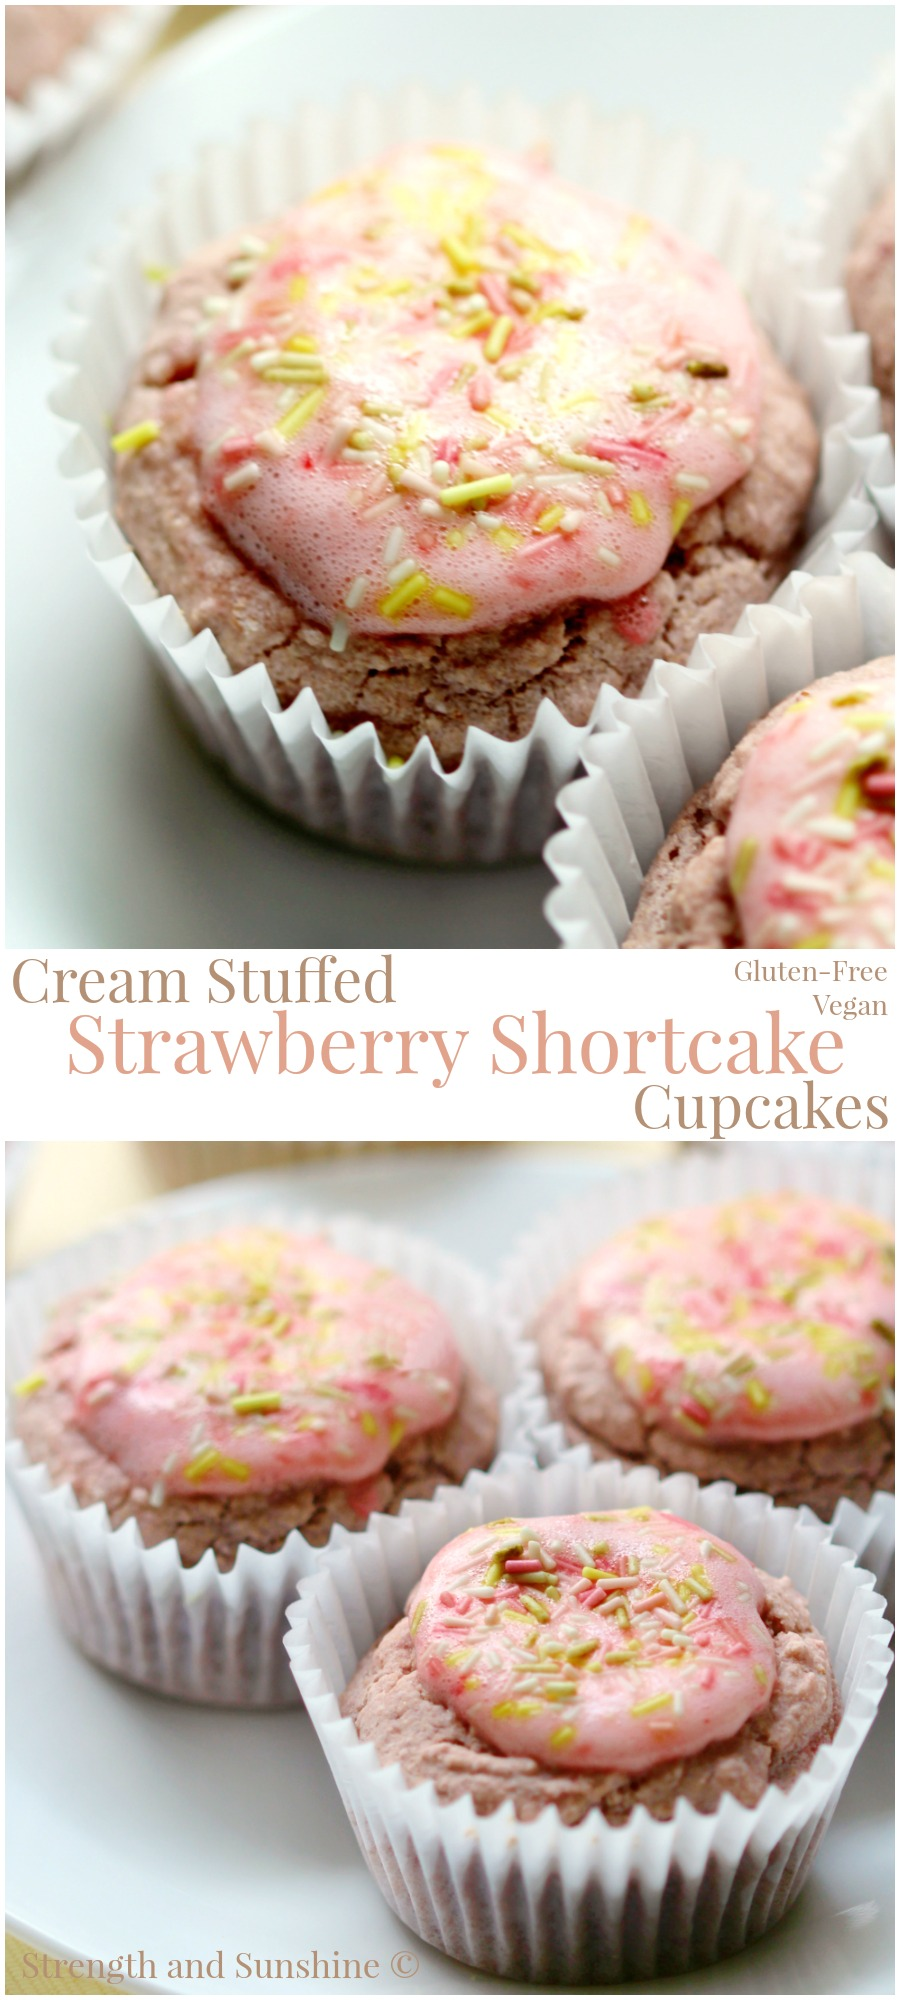 "Cream Stuffed Strawberry Shortcake Cupcakes | Strength and Sunshine @RebeccaGF666 Strawberry shortcake in cupcake form! Stuffed with a strawberry coconut cream, these delightful, gluten-free, & vegan cakes will make you ""berry"" happy! Forget your old strawberry shortcake or dessert recipes!"